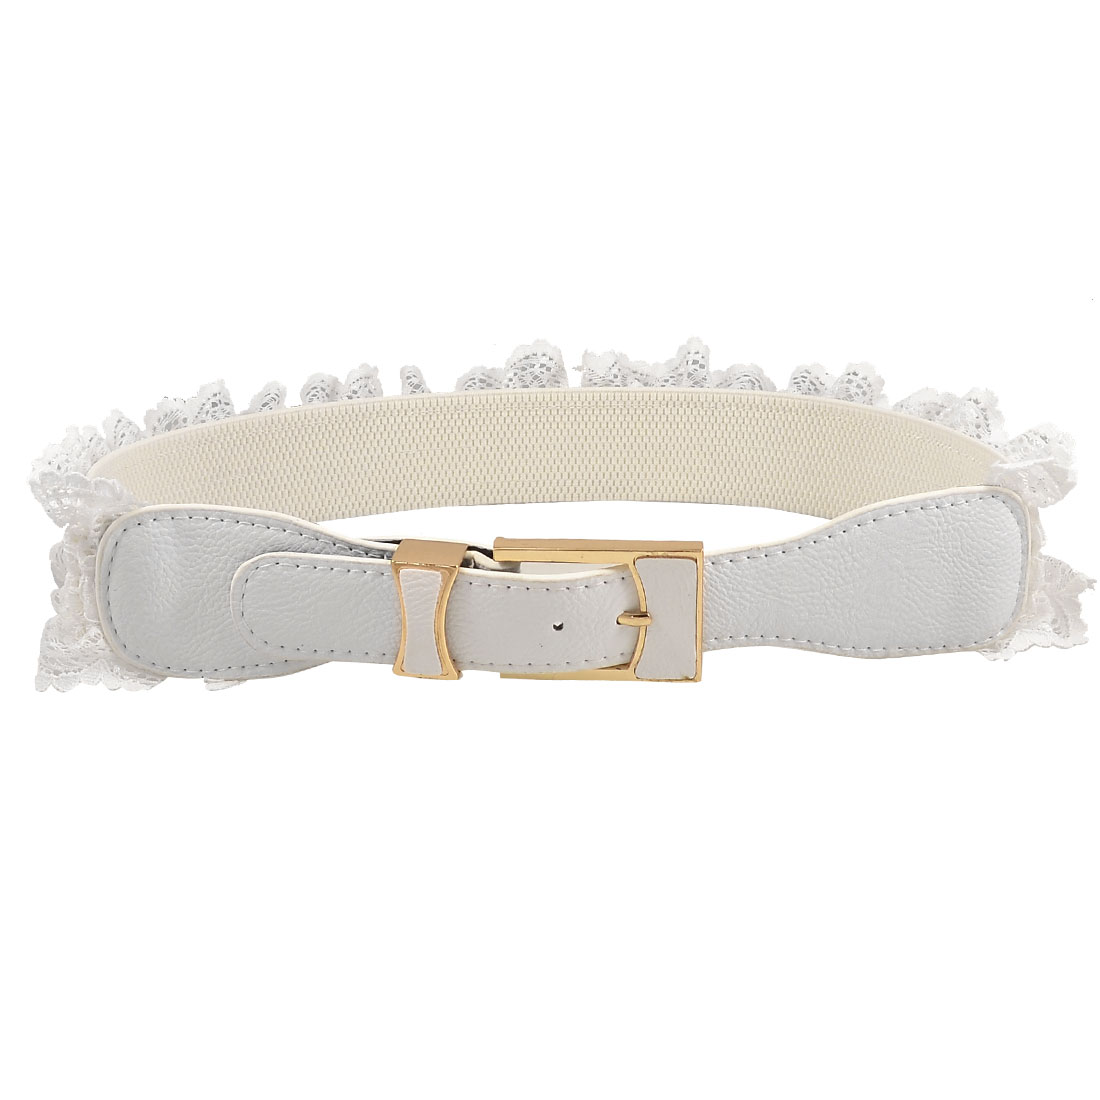 White Lace Accent Faux Leather Stretchy Belt Waistband for Lady Woman